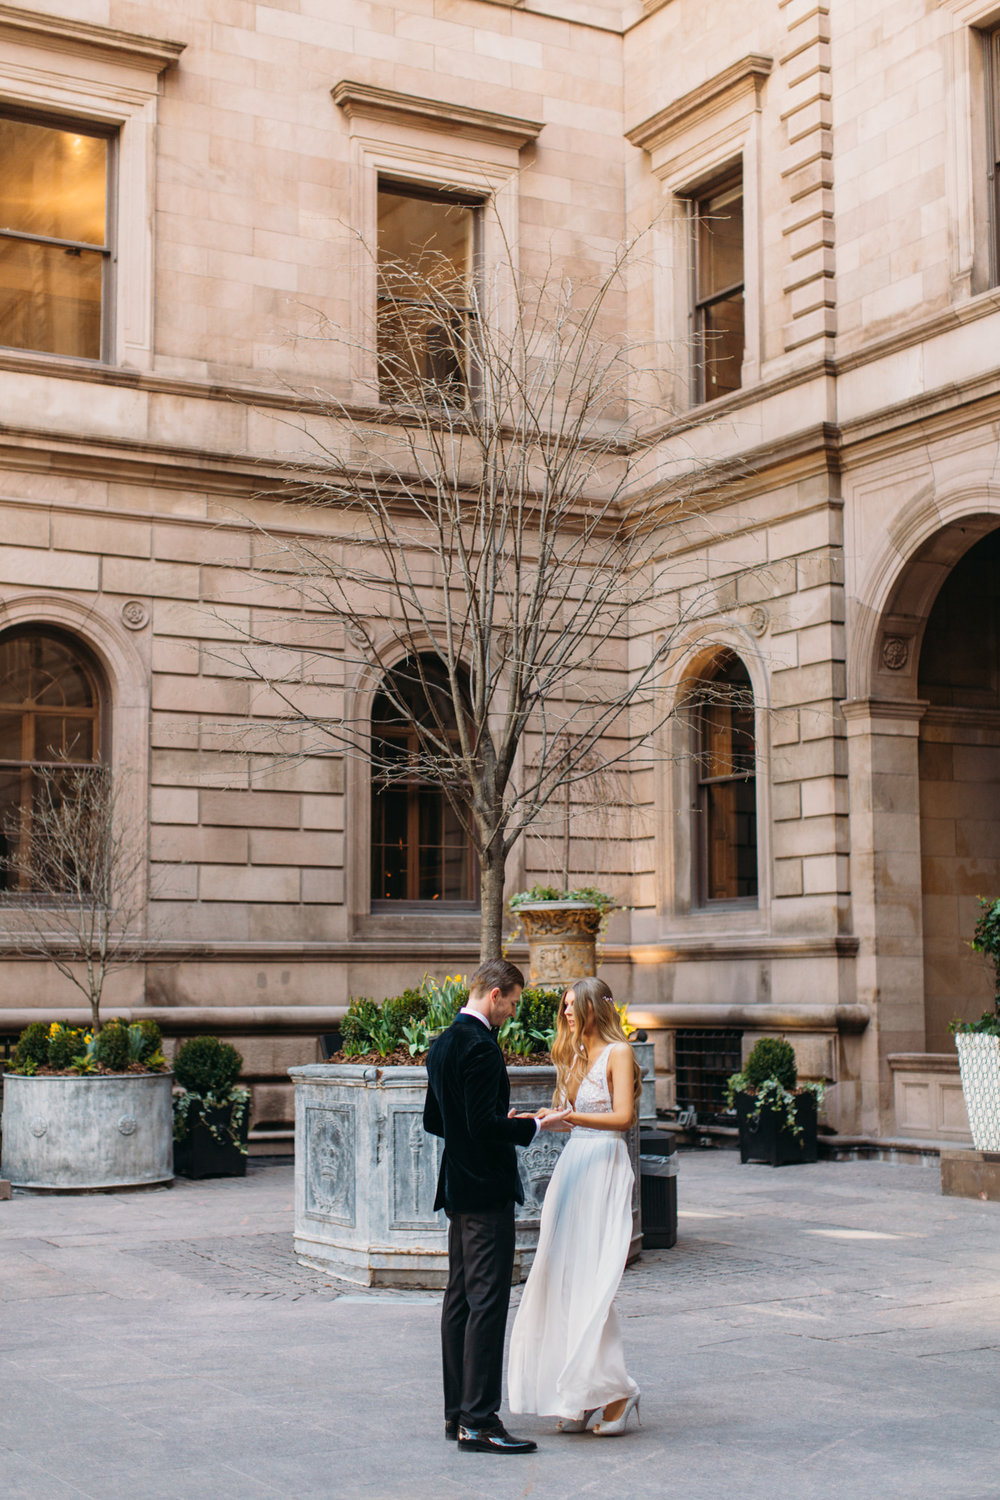 _B2C9655NYC wedding photography manhattan penhouse lotte palace brooklyn wedding photogrpaher boris zaretsky.jpg